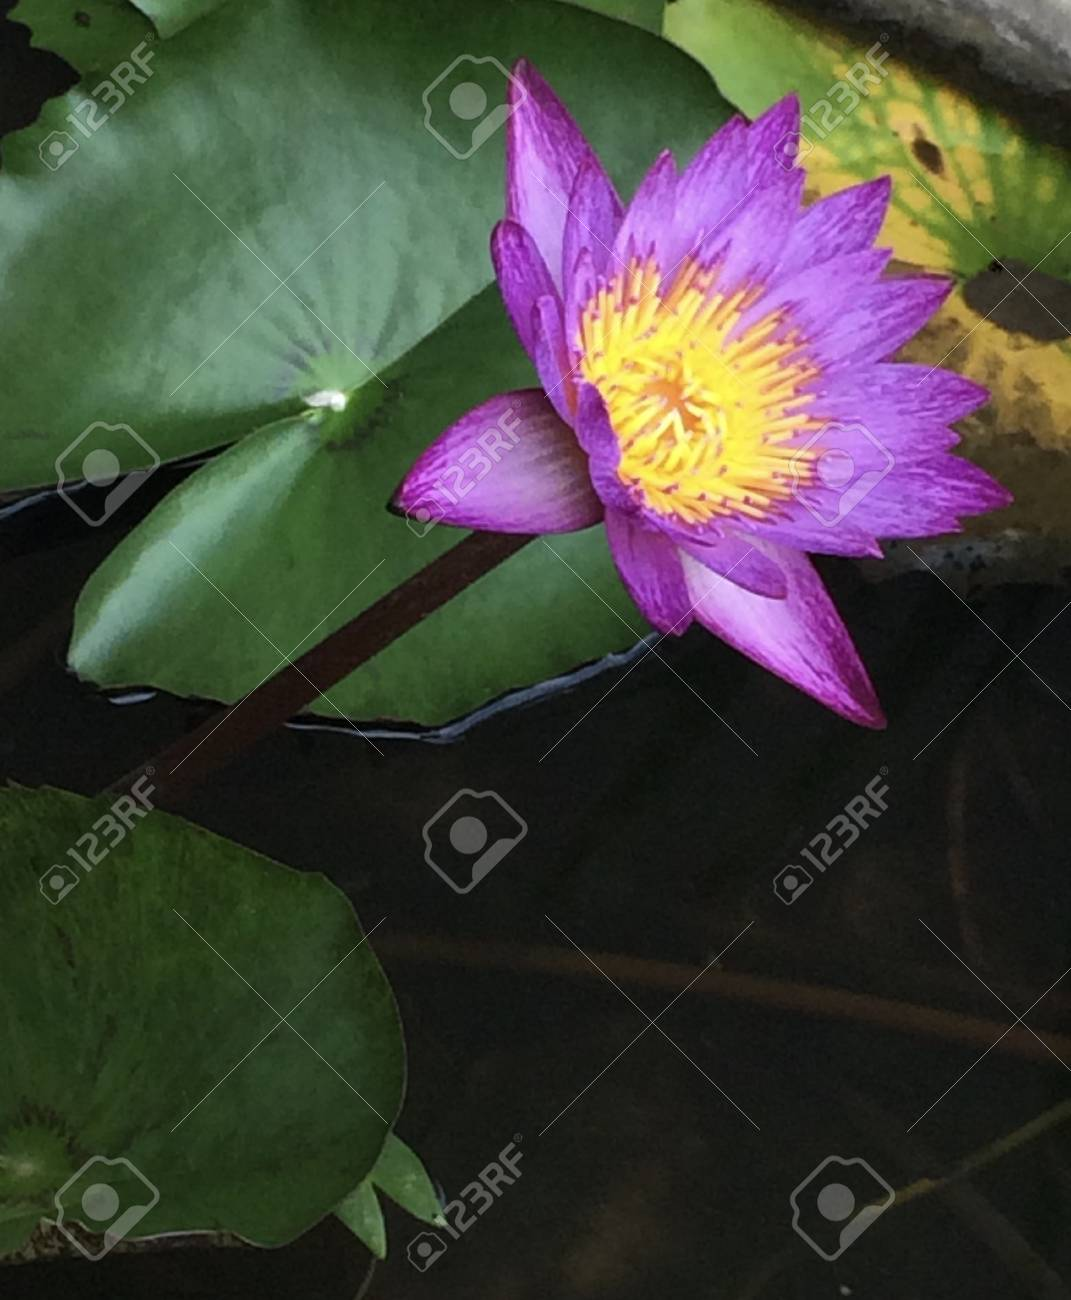 Open lotus flower stock photo picture and royalty free image image open lotus flower stock photo 72522209 izmirmasajfo